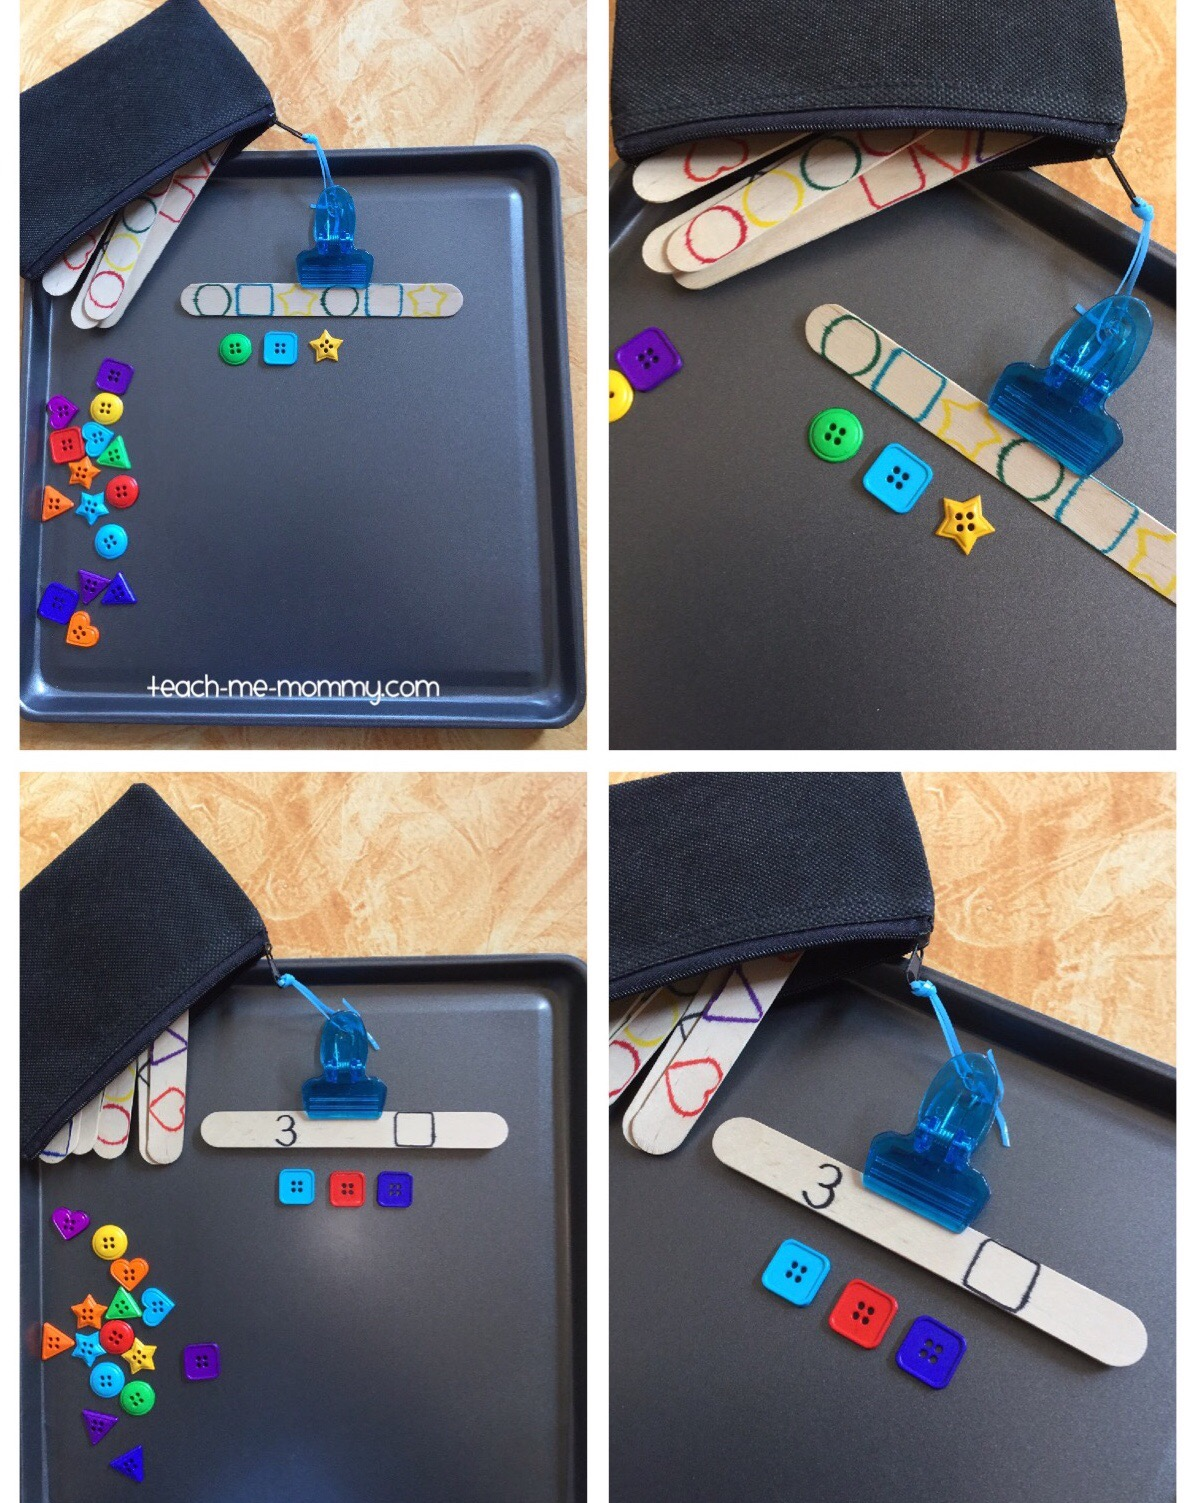 patterning/counting